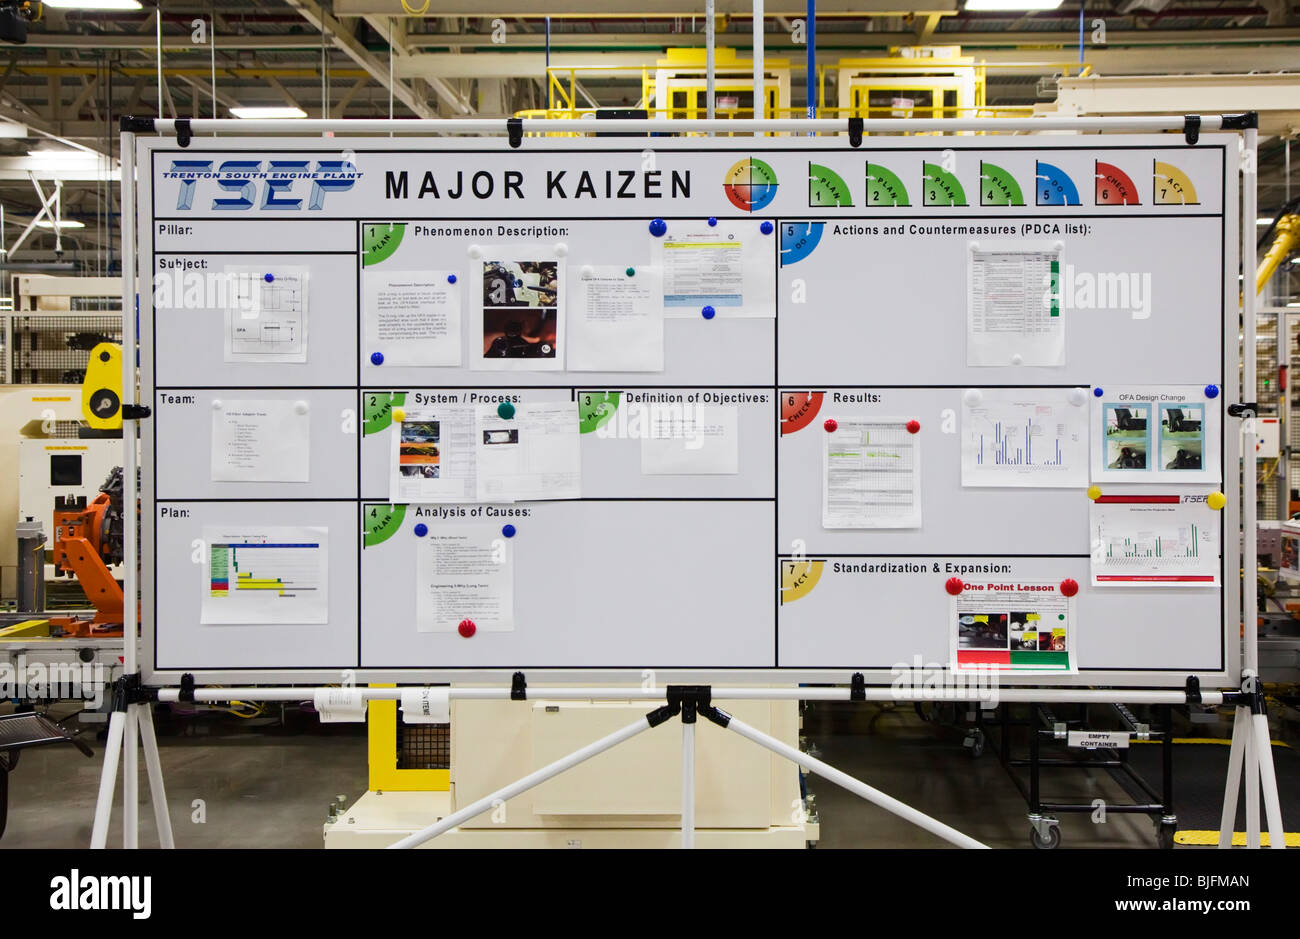 Kaizen Board At Chrysler Engine Plant Stock Photo